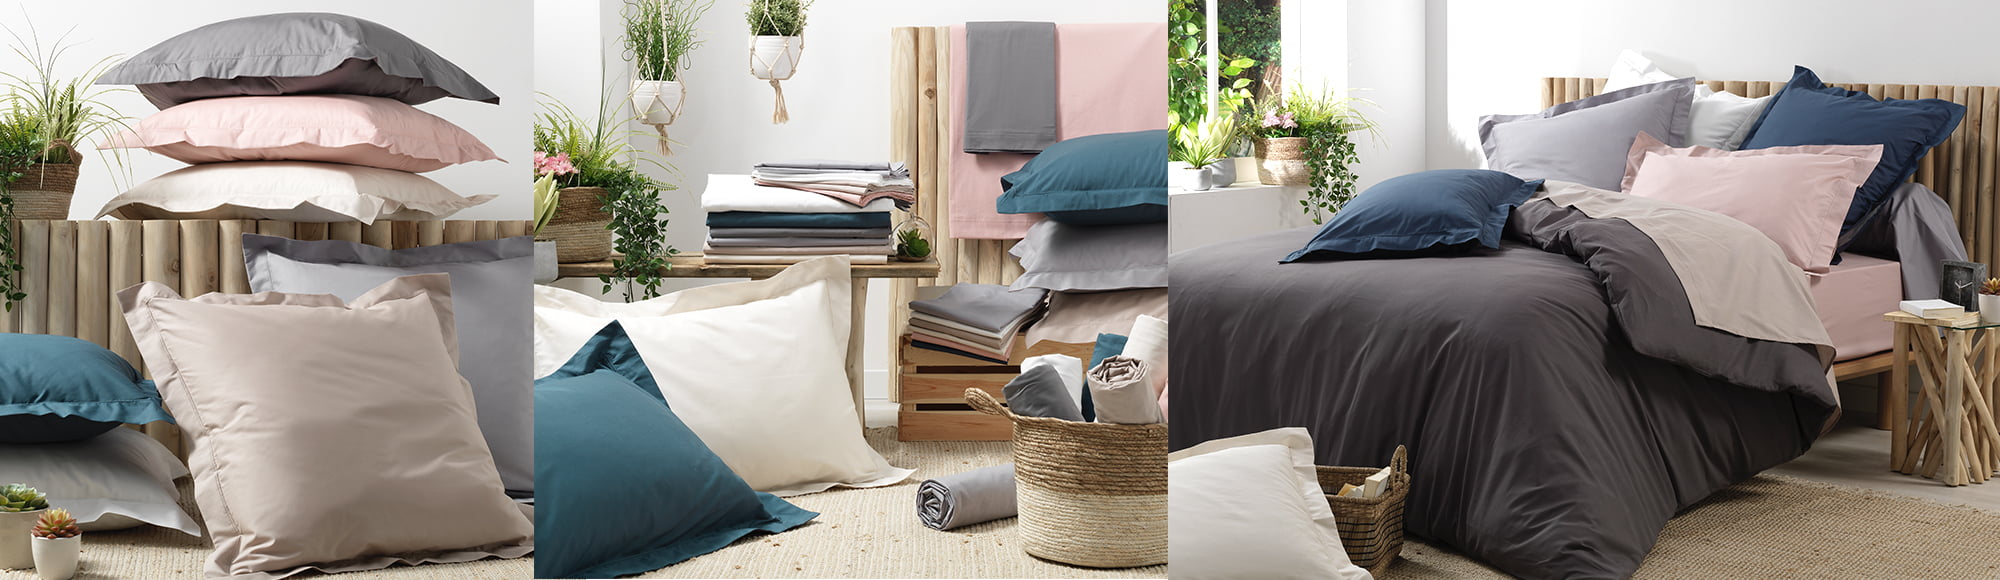 U10 - interior decoration supplier - douceur d interieur - bed linen - percale